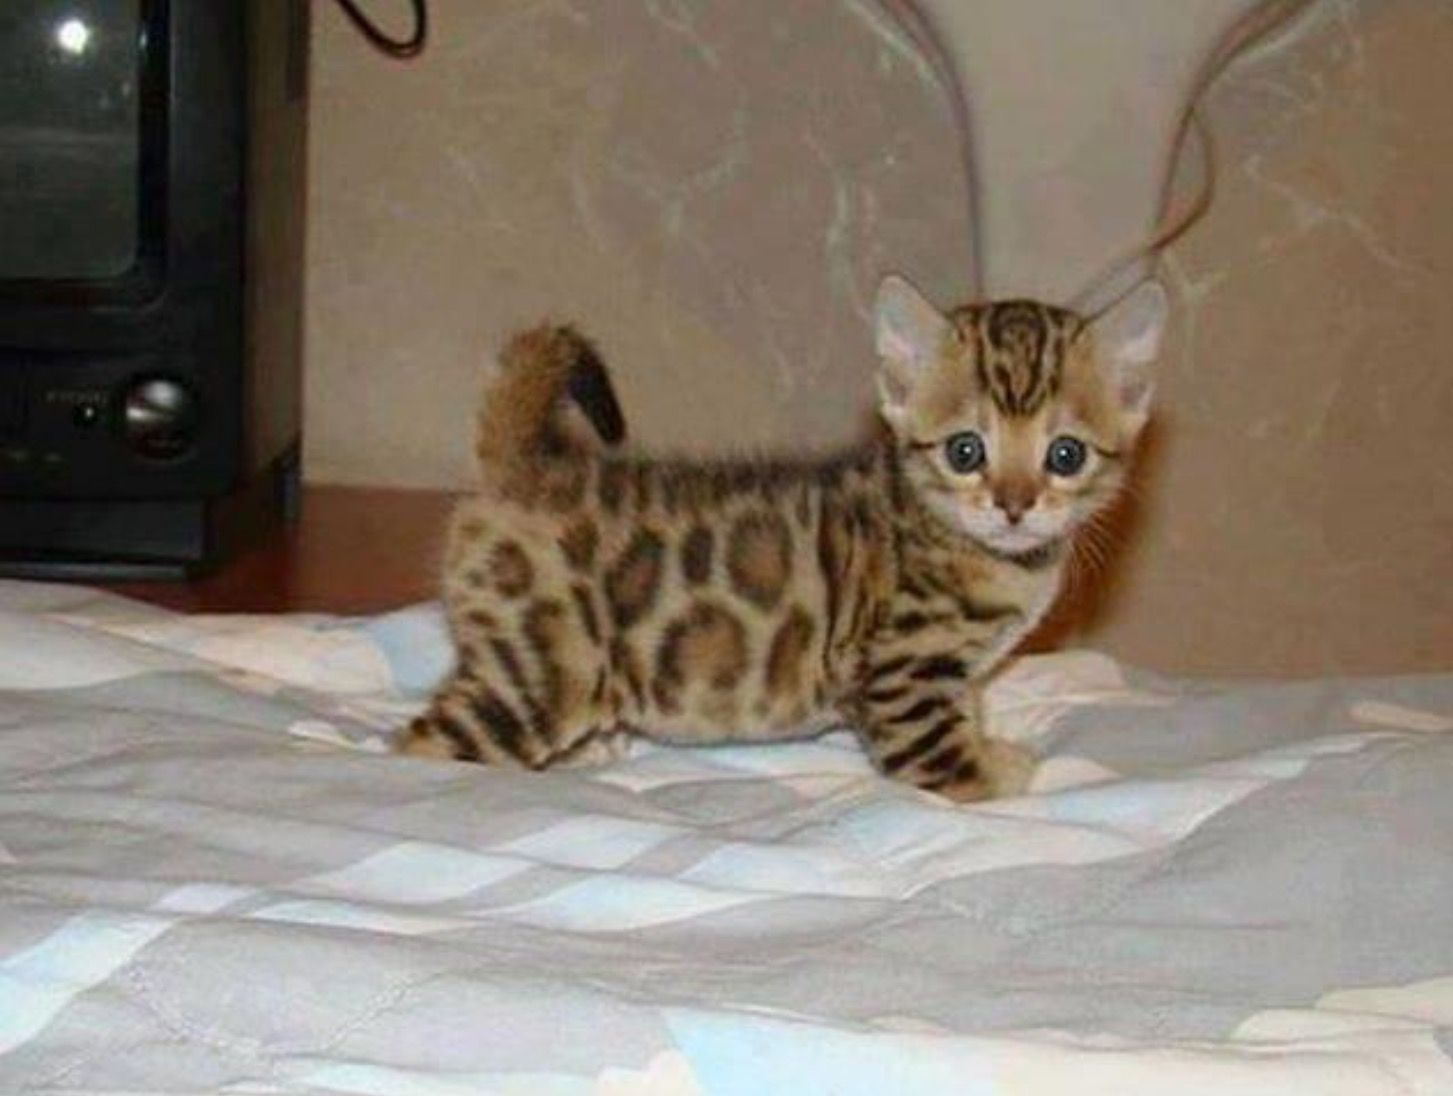 Pin By Christina Collet On Cute Animals In 2020 Bengal Kitten Kittens Cutest Cute Cats And Kittens